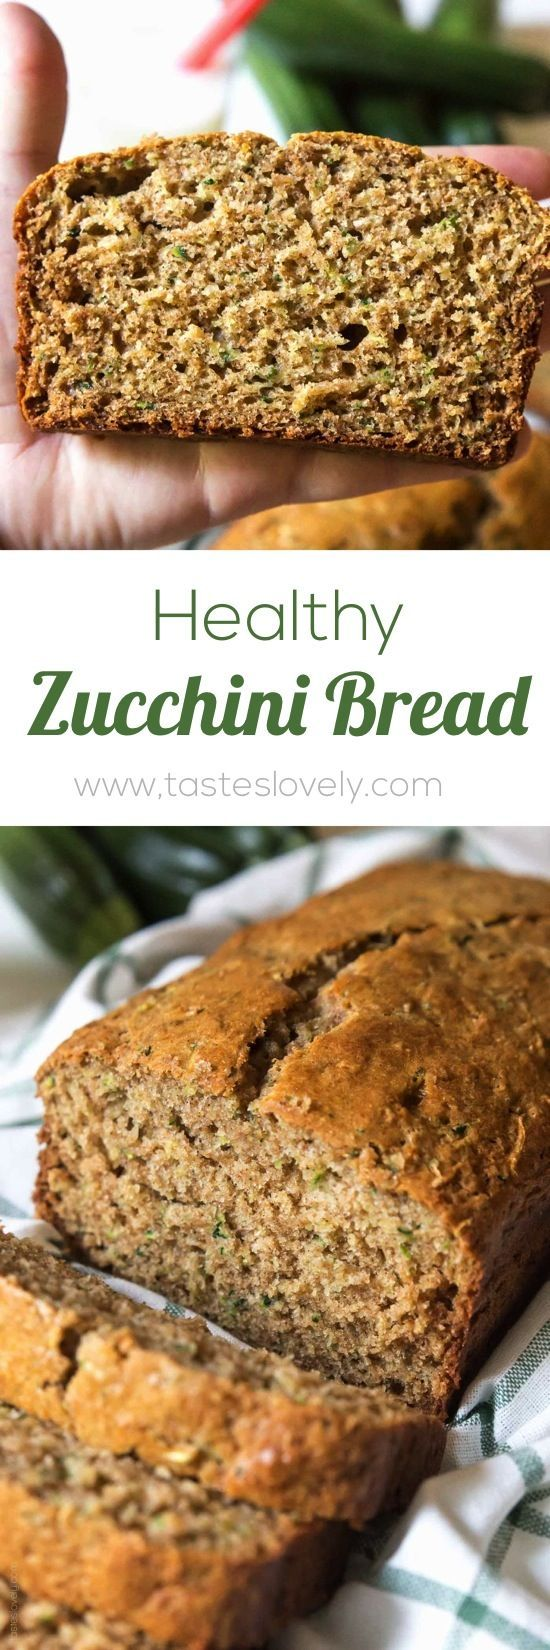 Authentic Healthy Zucchini Bread, ,